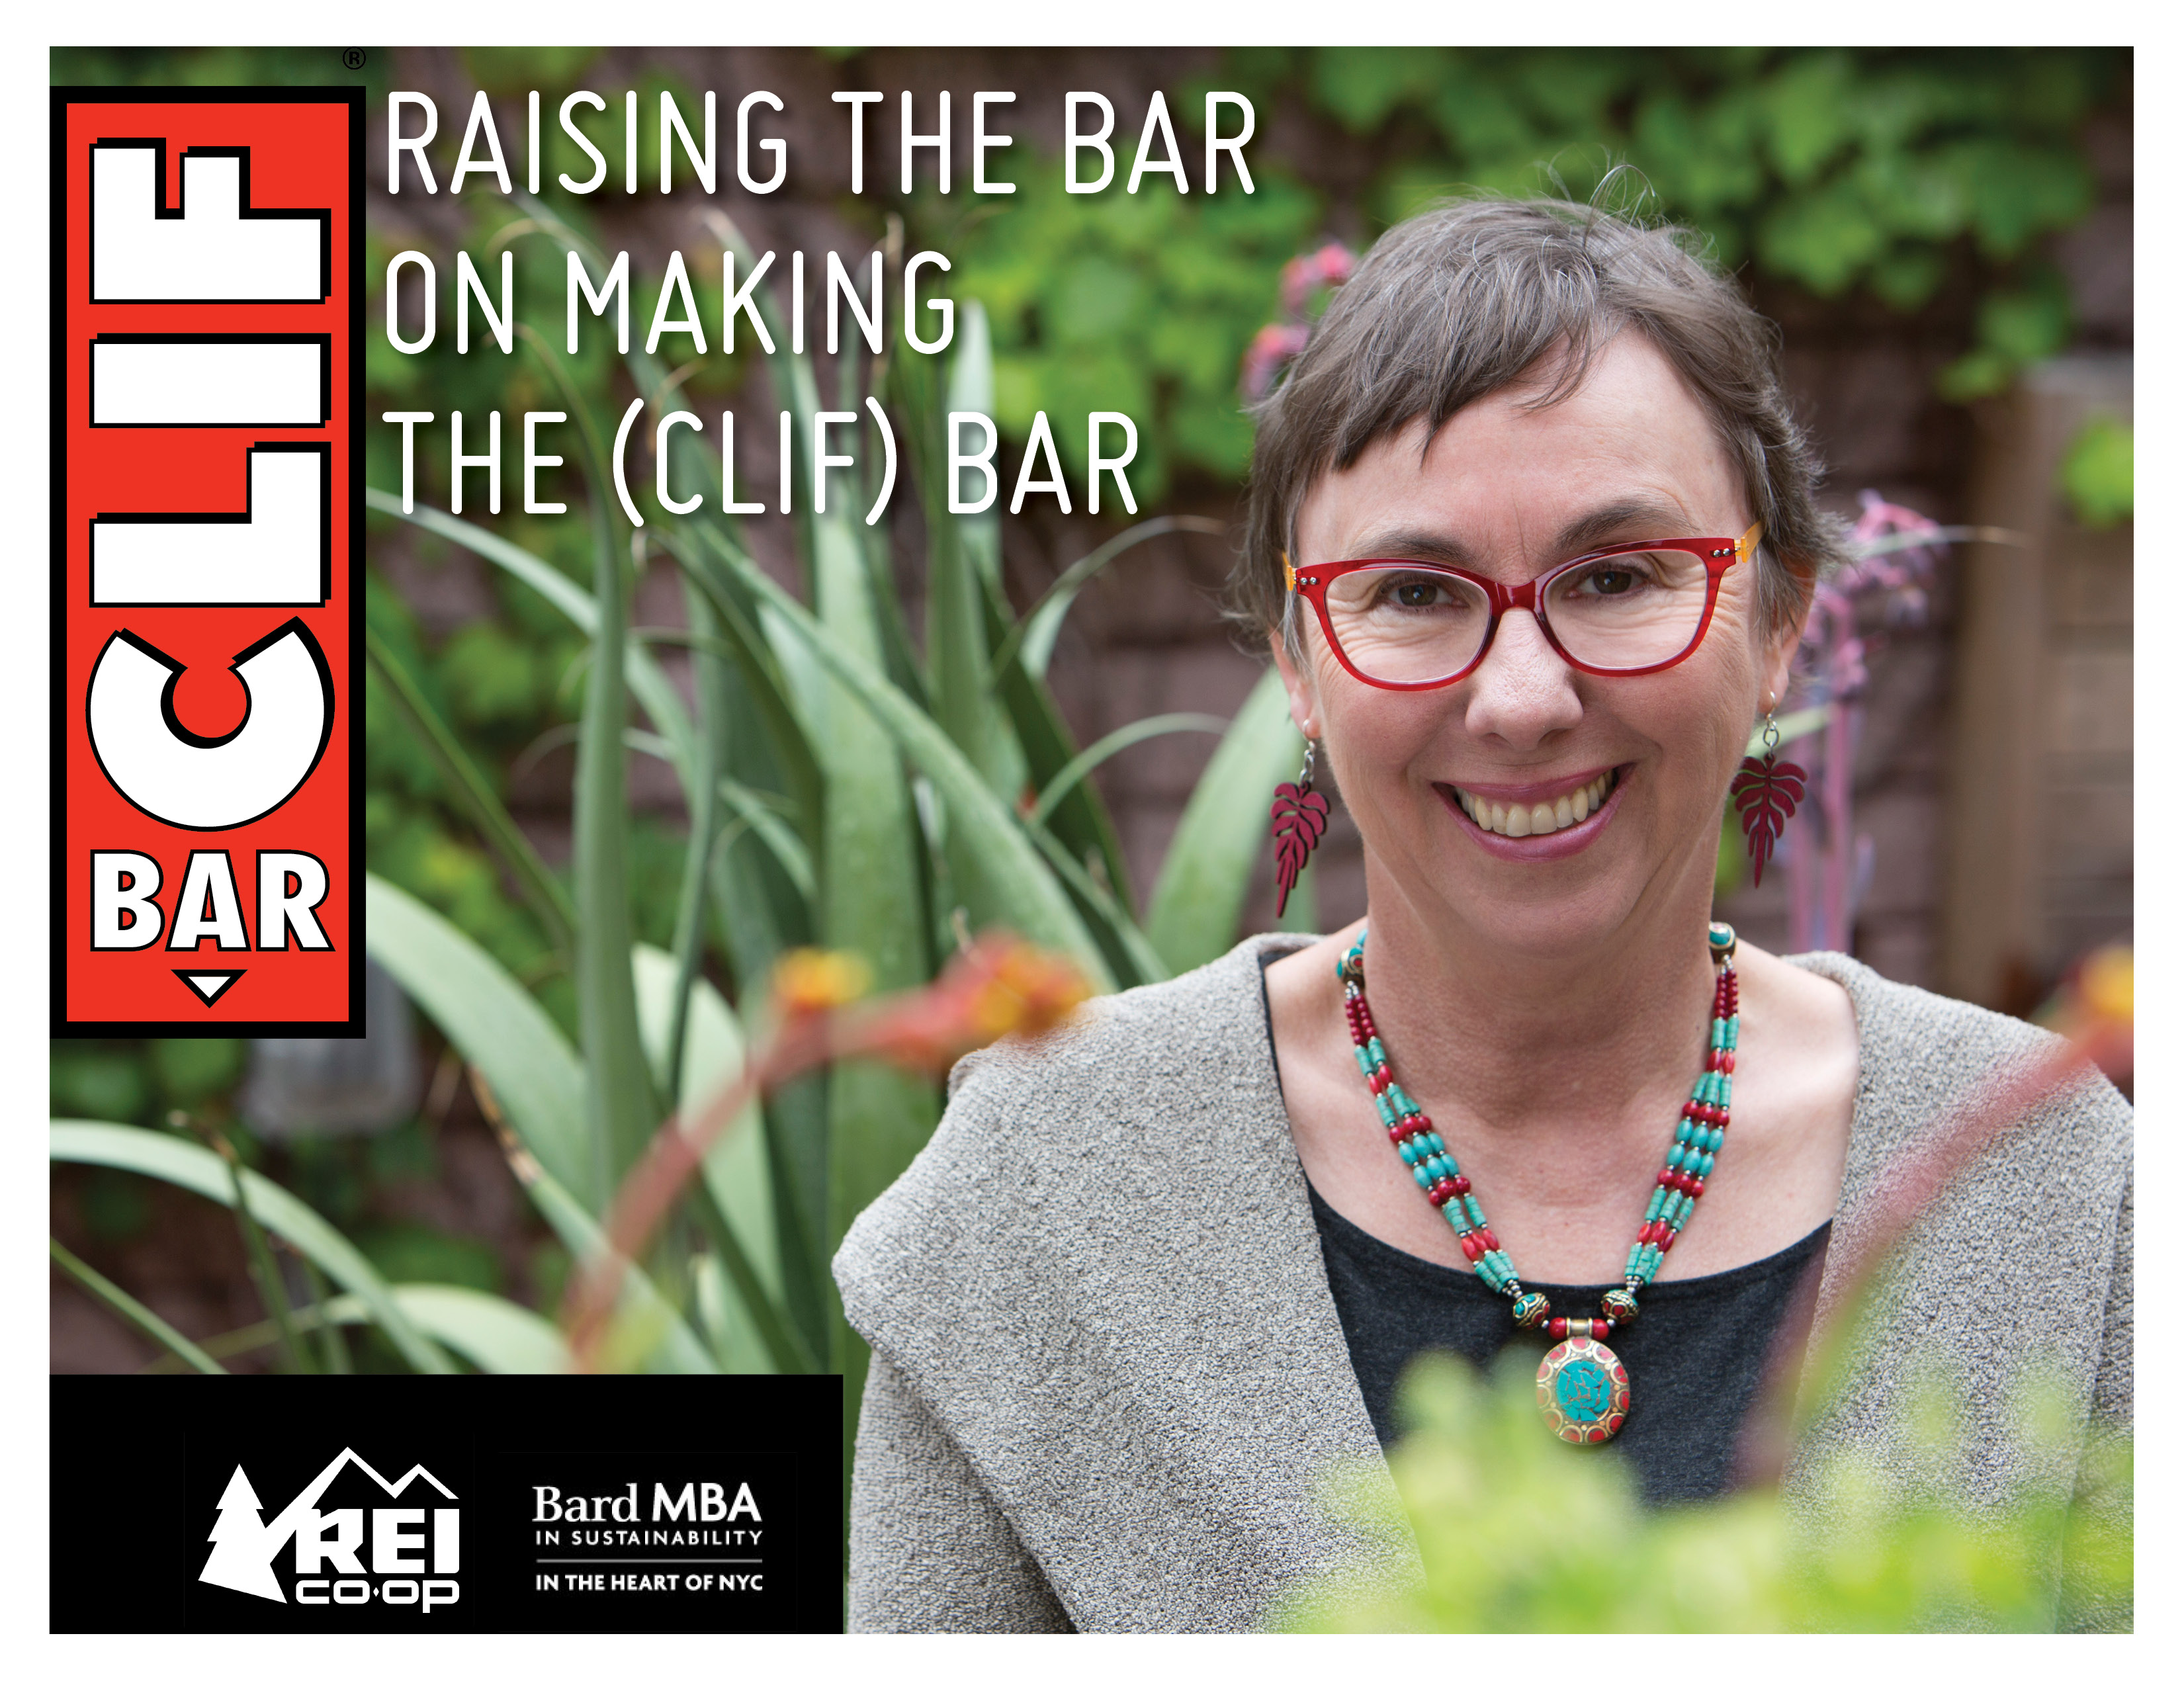 [Raising the Bar on Making the (Clif) Bar]